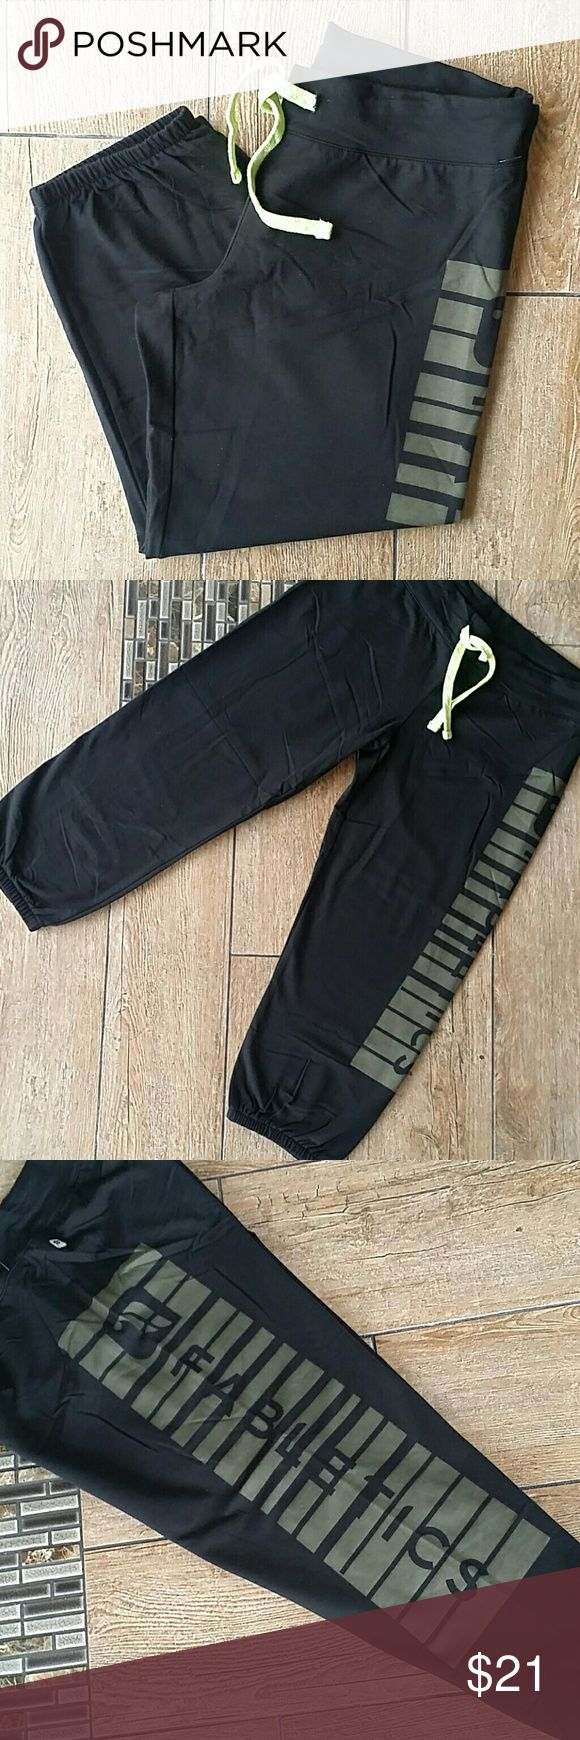 """NWT FABLETIC CROPPED JOGGERS NWT Black cropped pants """"FABLETICS""""written down left leg in army green Functional lime green drawstring Elastic gathering below the knee 1 rear pocket 20"""" inseam No rips, stains or defects Smoke free home Fabletics Pants Track Pants & Joggers"""